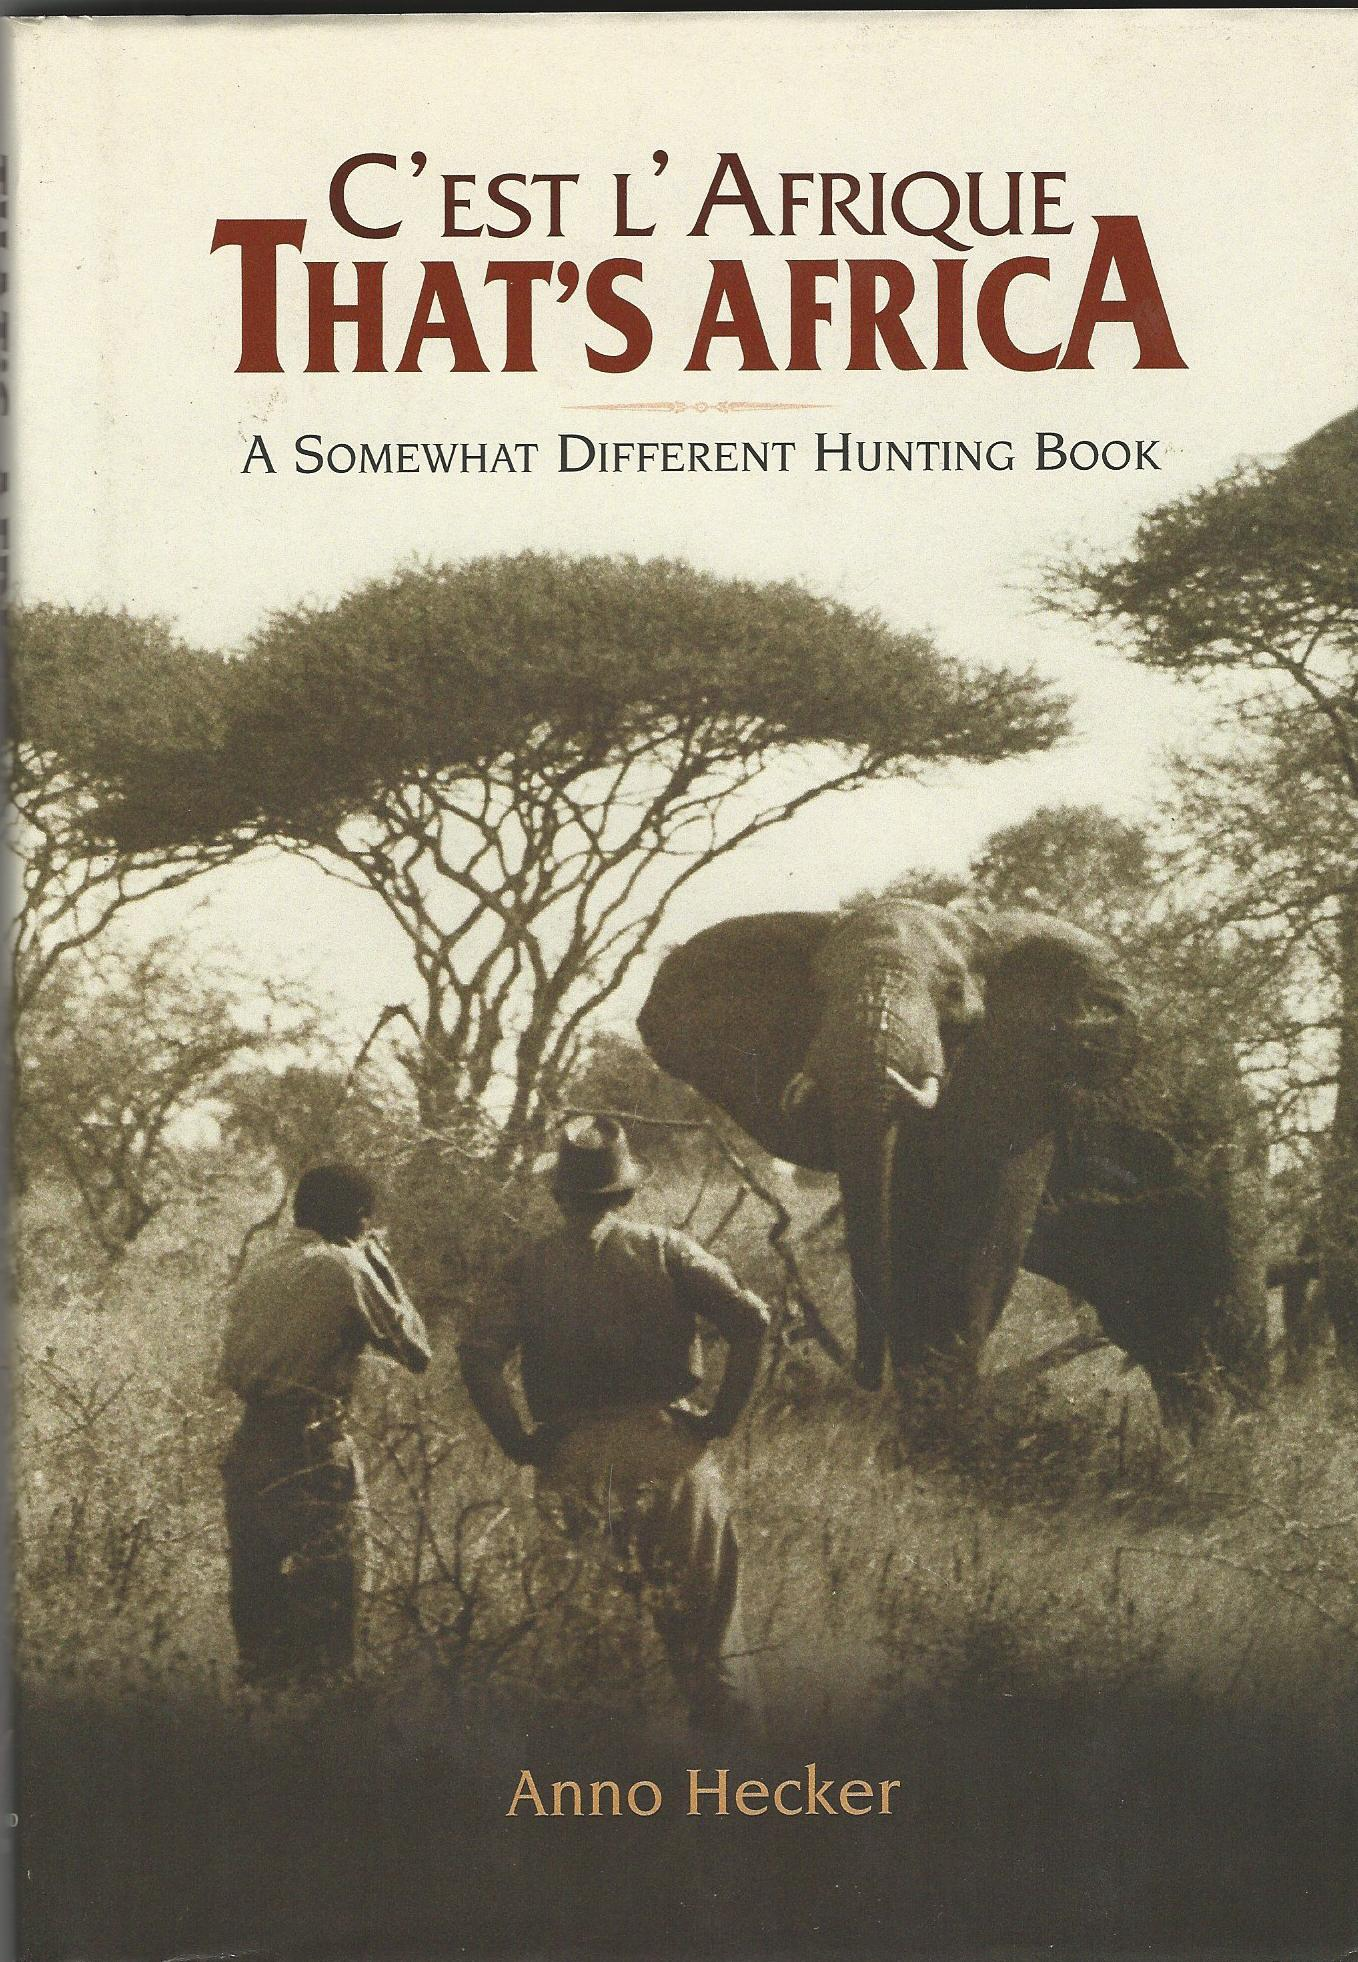 Image for That's Africa: C'est L' Afrique. A Somewhat Different Hunting Book